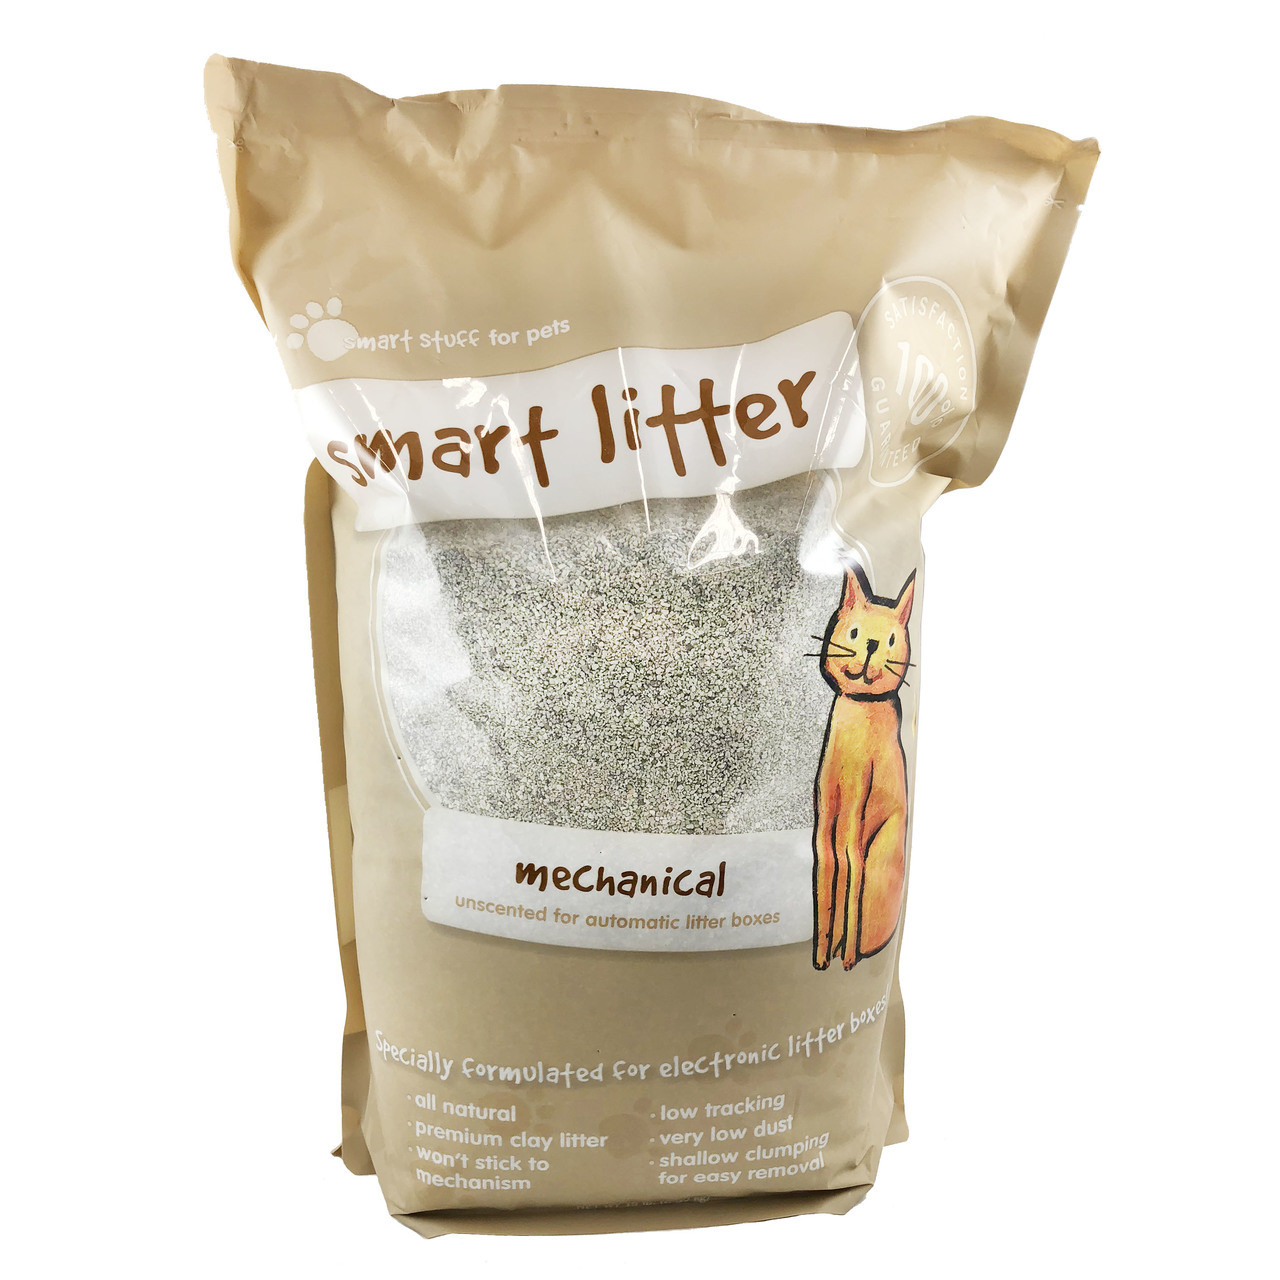 Smart Litter Mechanical Unscented for Automatic Litter Boxes Formula Cat Litter